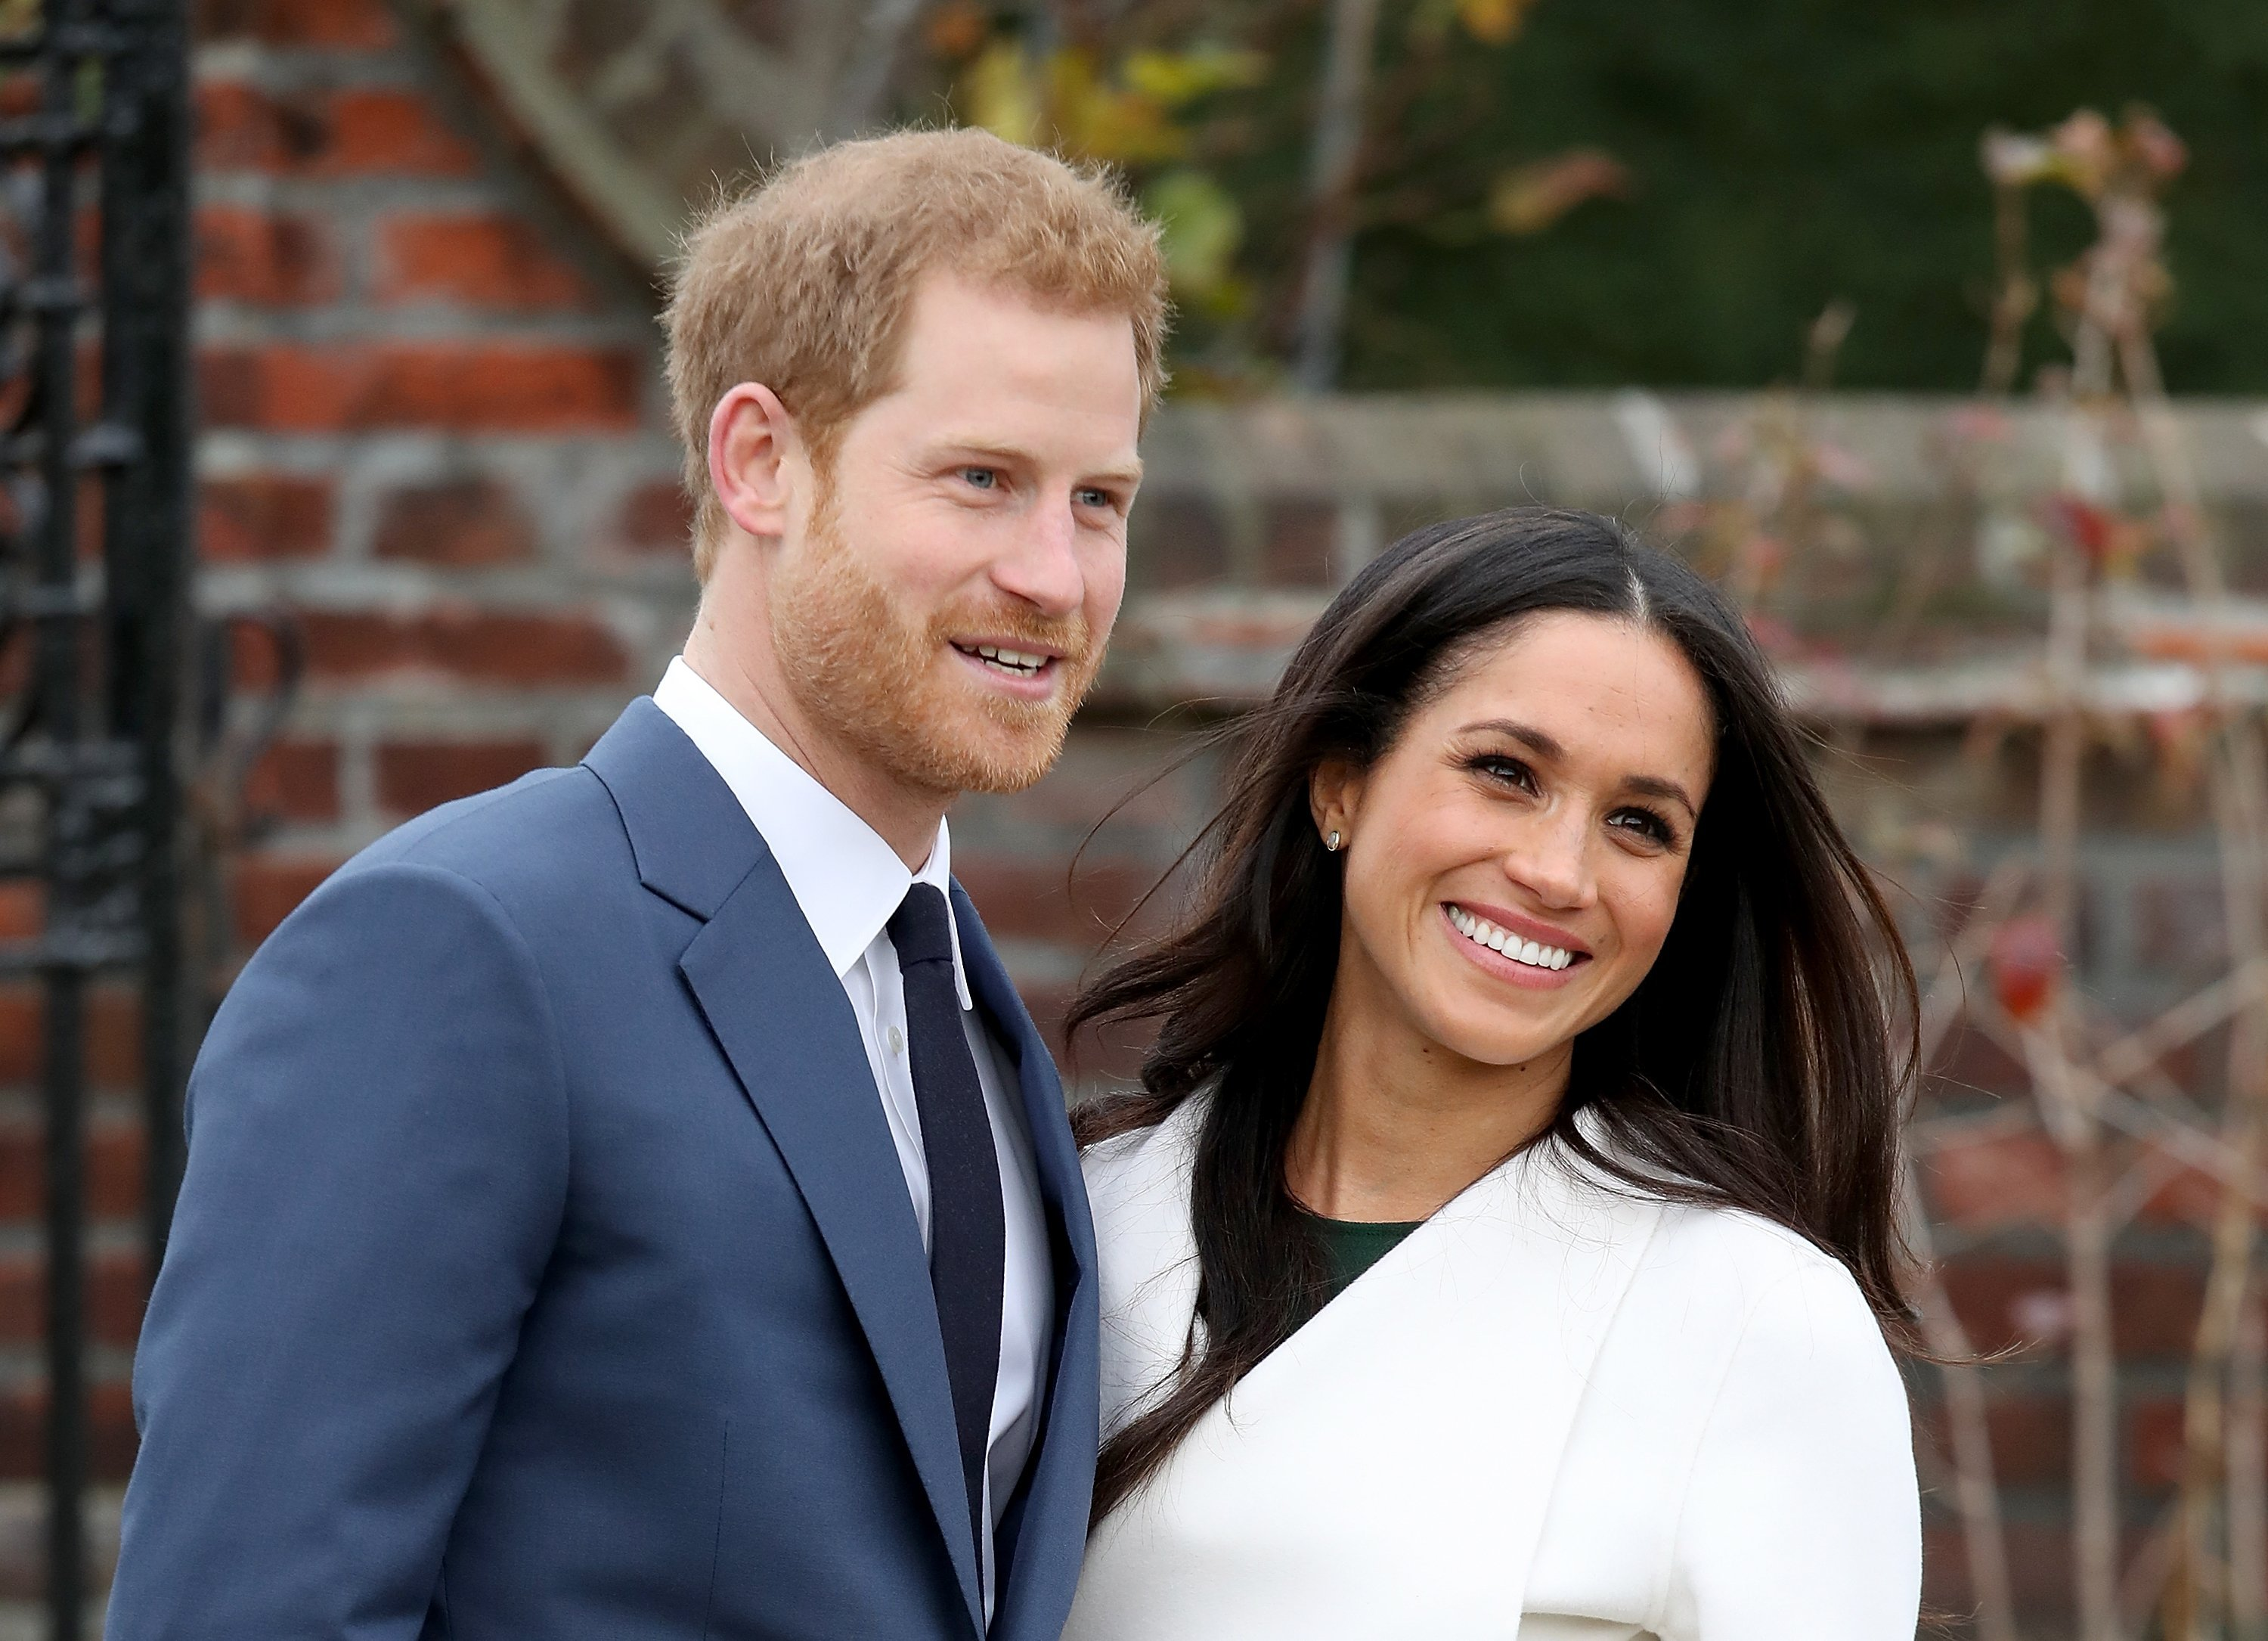 Prince Harry and actress Meghan Markle during an official photocall to announce their engagement at The Sunken Gardens at Kensington Palace on November 27, 2017, in London, England. | Source: Getty Images.